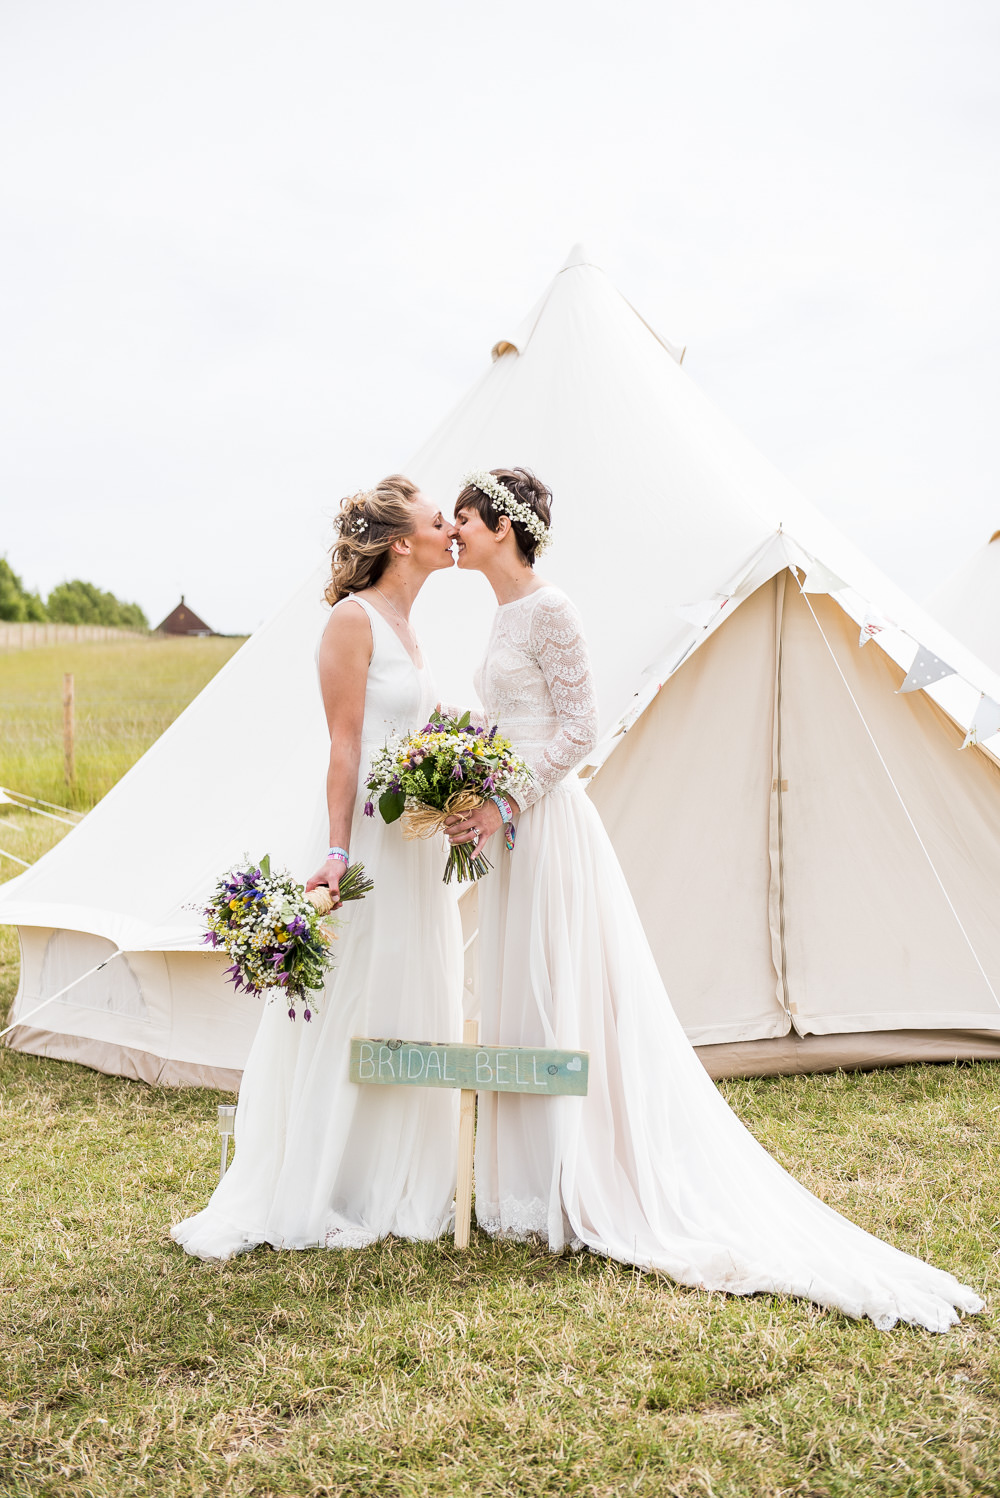 Bride Bridal Long Sleeve Lace Dress Lace Sleeveless Gypsophila Crown Wildflower Bouquet Bell Tent Inkersall Grange Farm Wedding Jessica Grace Photography